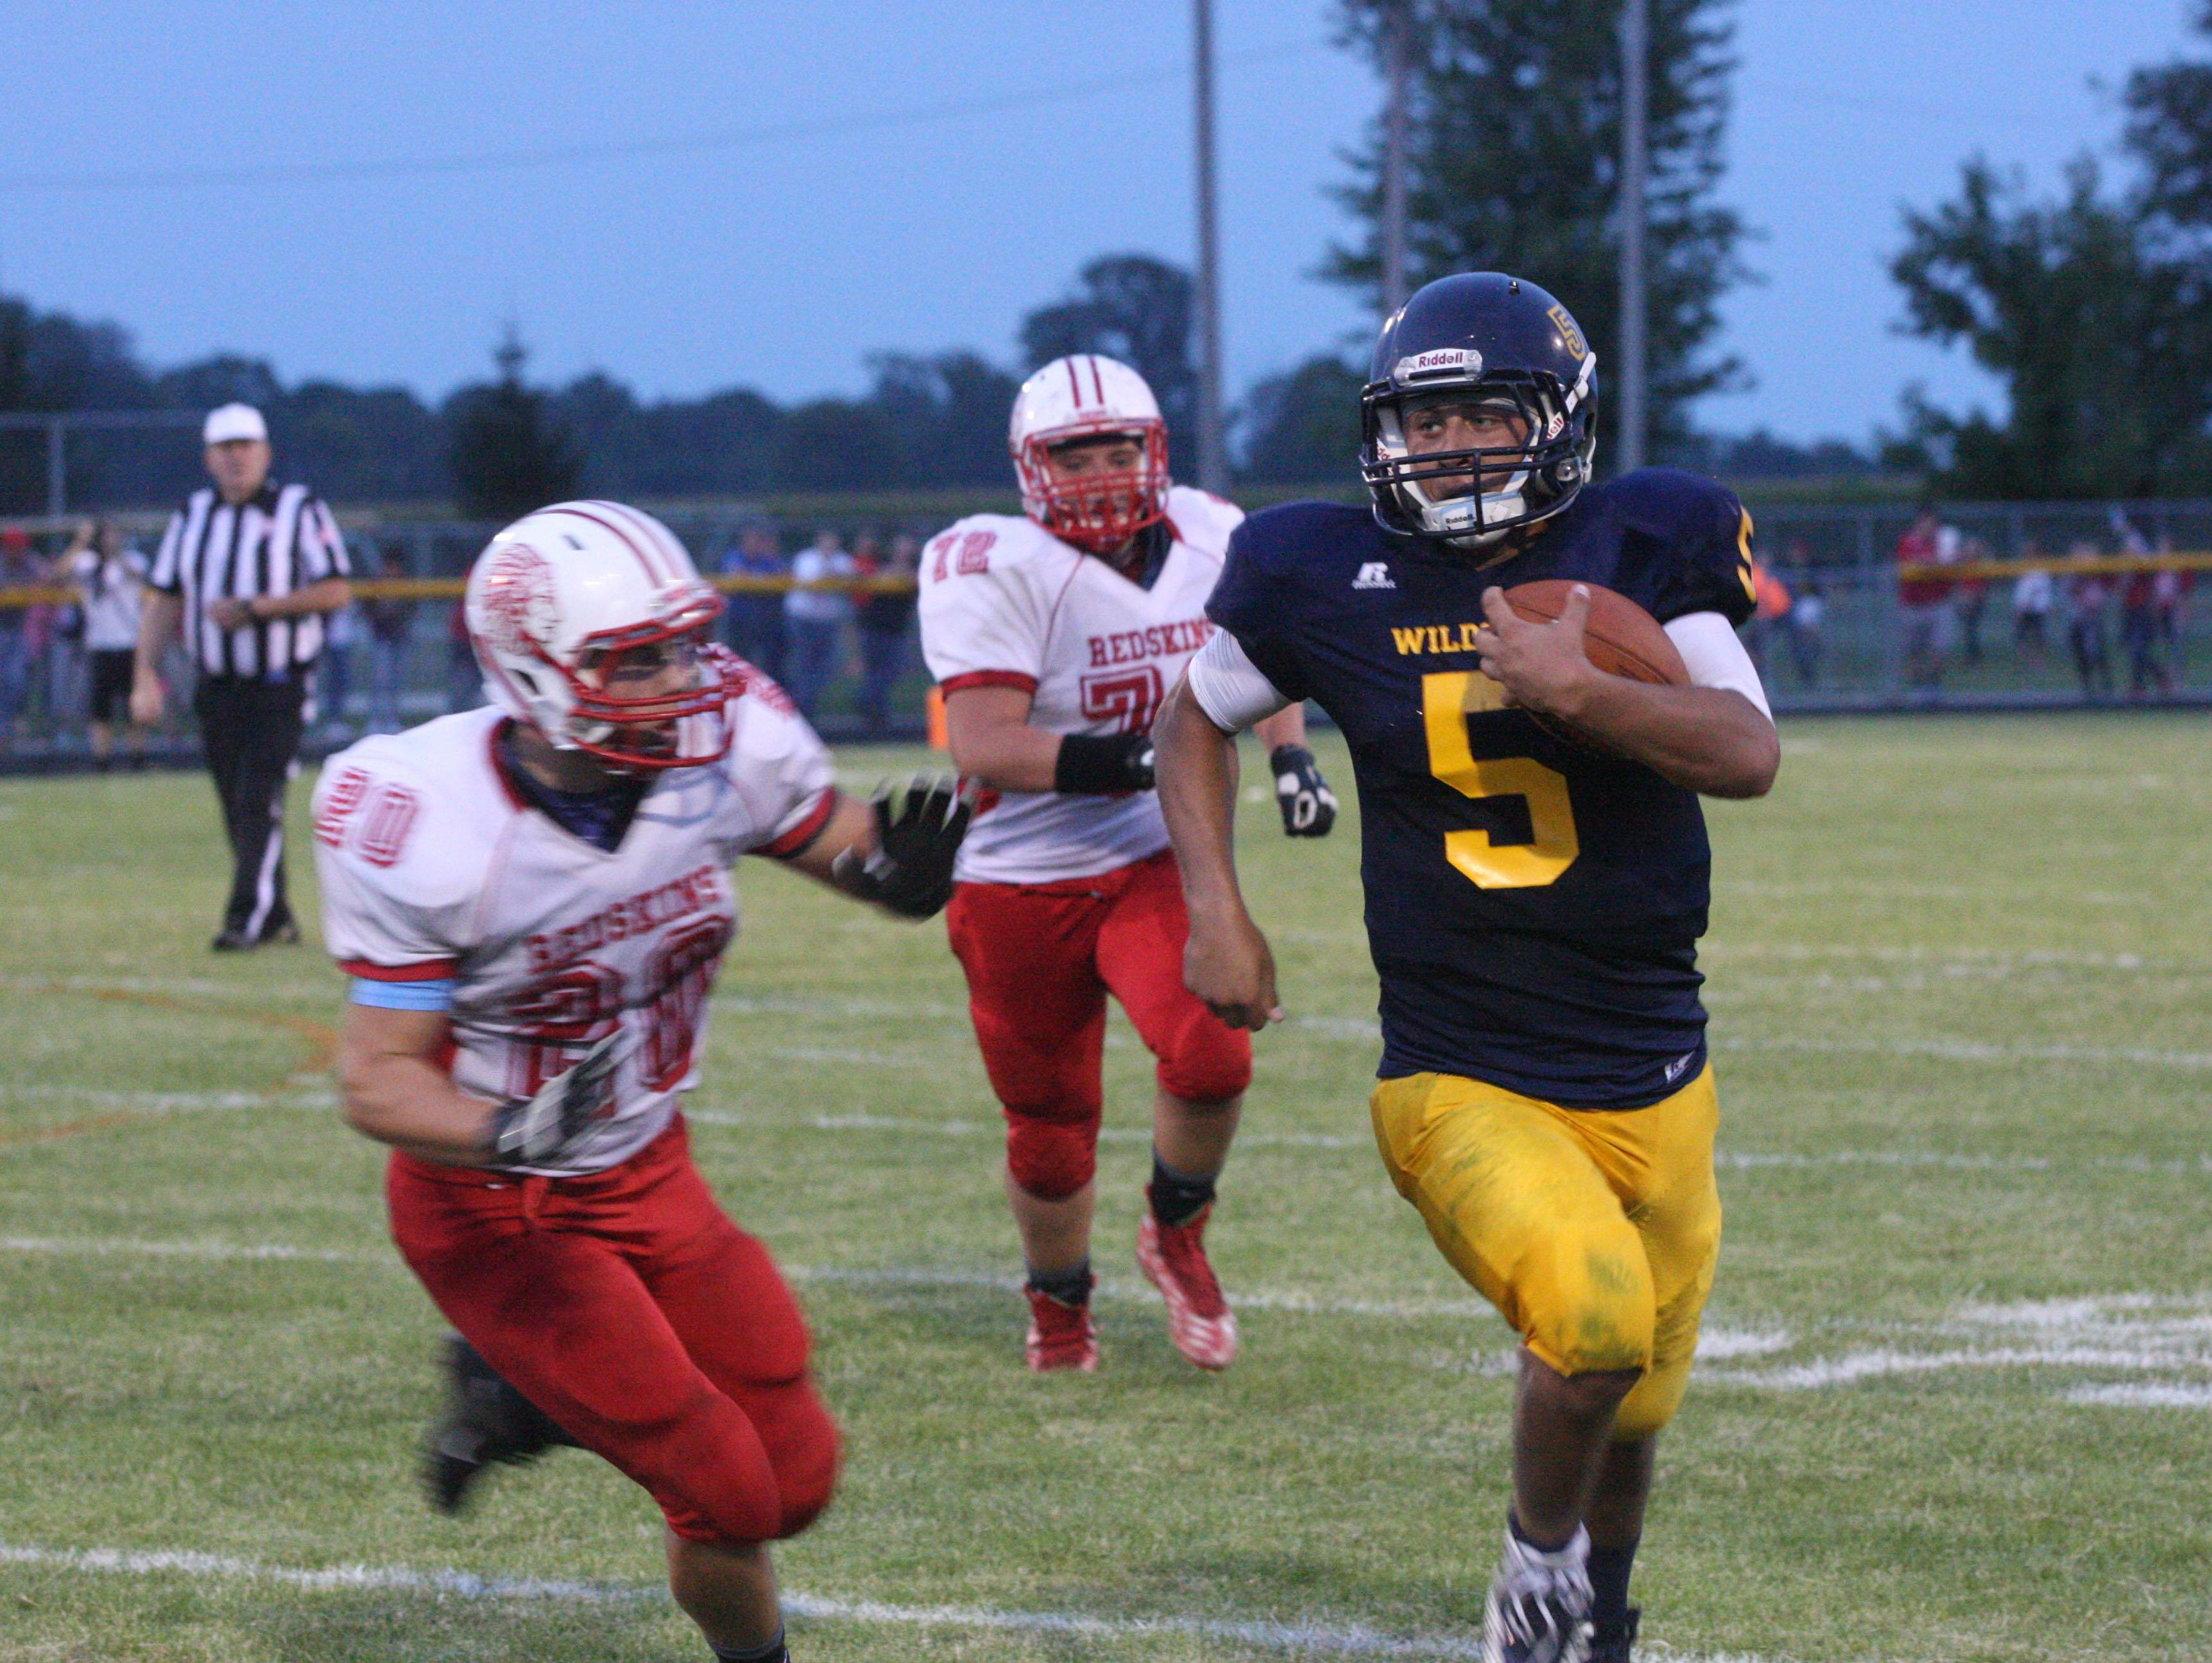 Woodmore quarterback Conner Bringman rushes for yardage against Port Clinton's Jacob McCoy in Week 1.